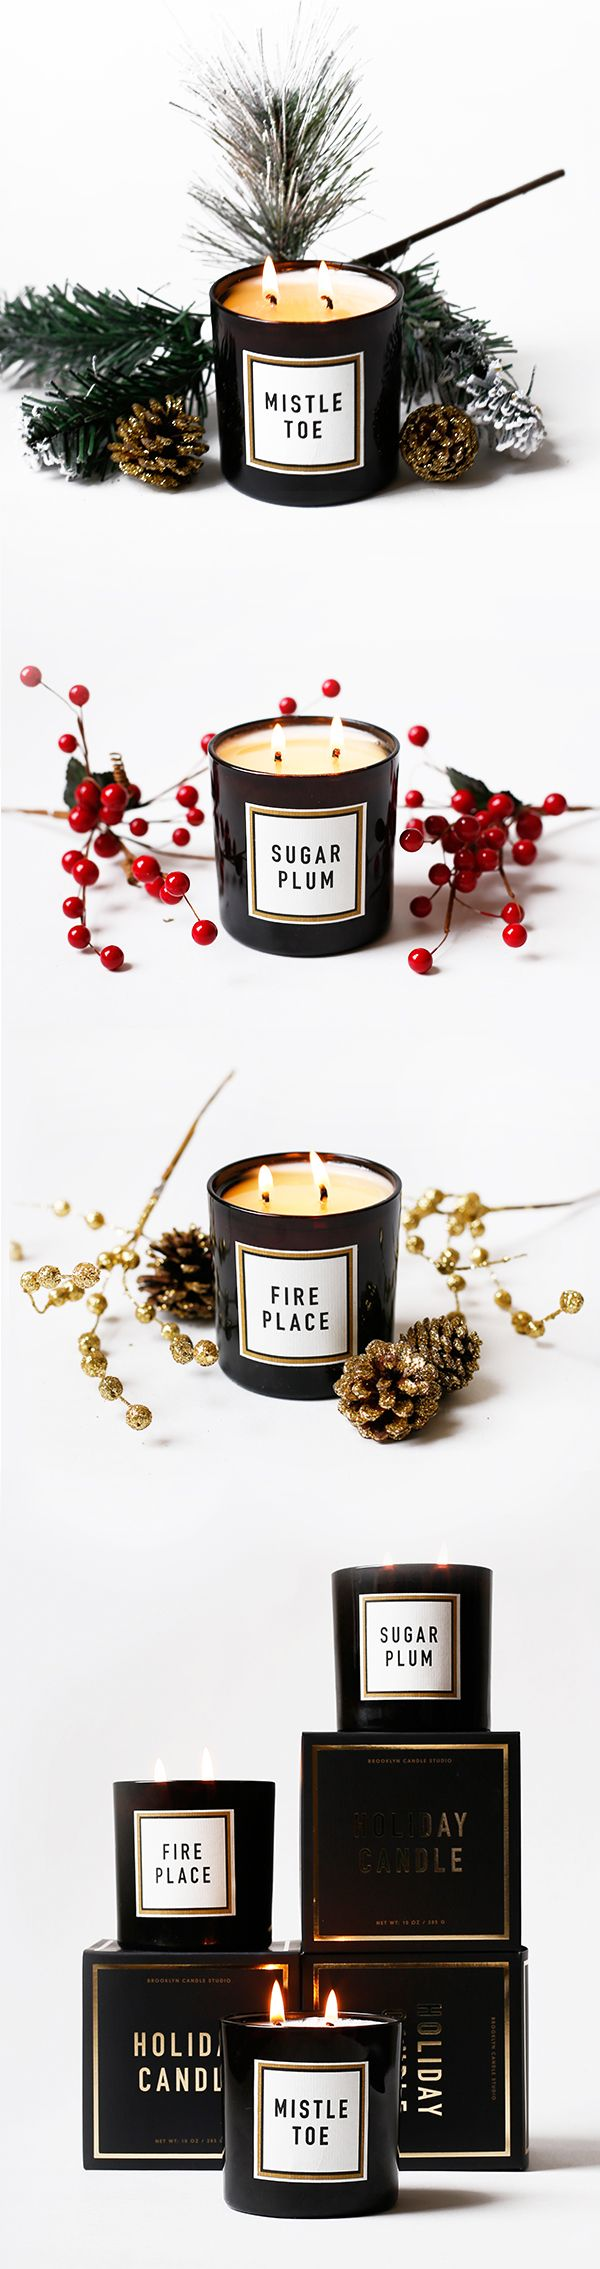 Holiday Candles - Mistletoe, Sugar Plum, Fireplace from Brooklyn Candle Studio. Pine scented candles, Christmas scented candles, Christmas Gift Ideas.